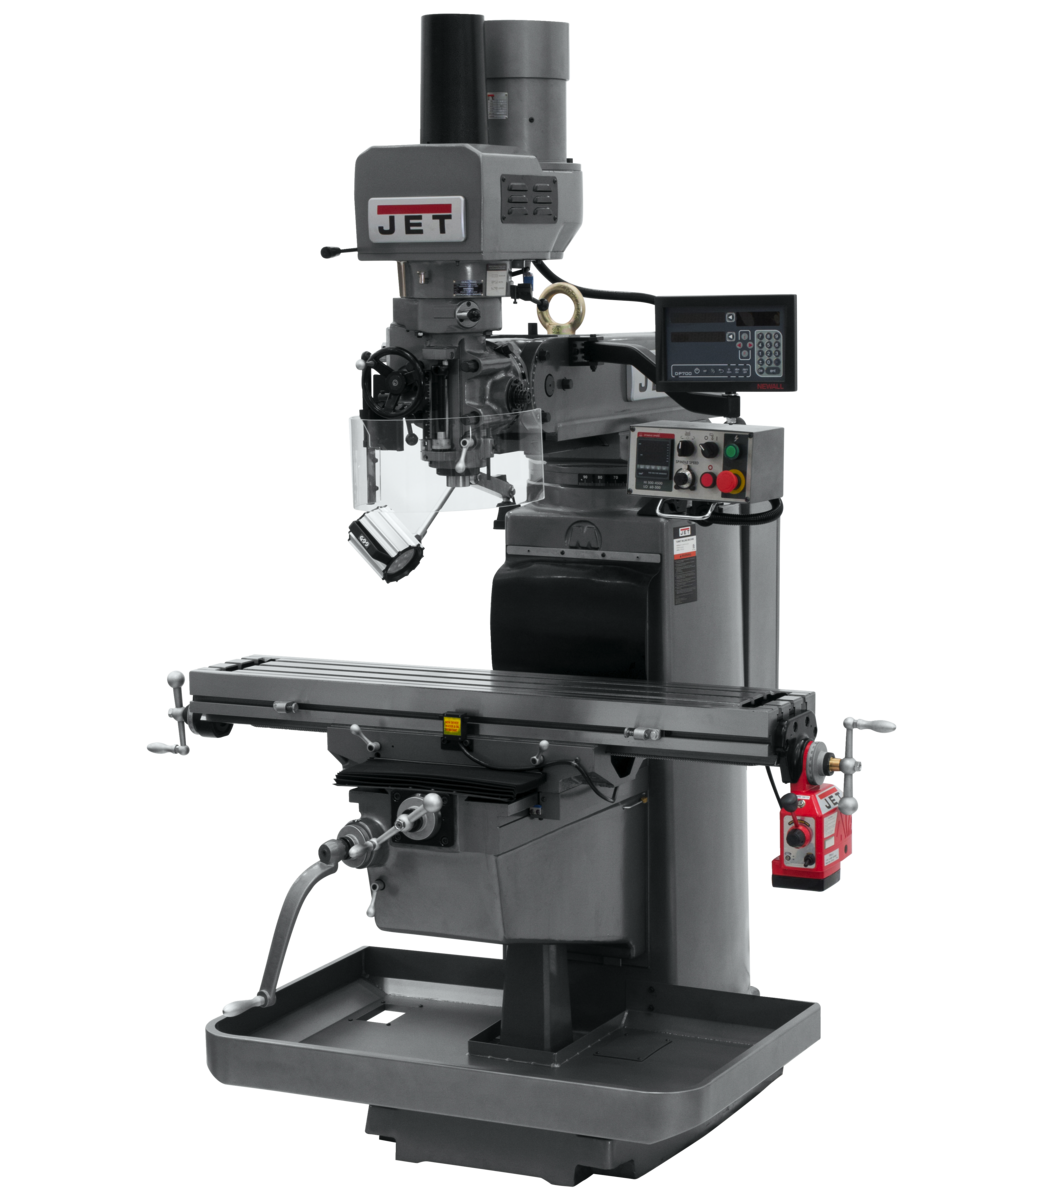 JTM-1050EVS2/230 Mill With 3-Axis Newall DP700 DRO (Knee) With X-Axis Powerfeed and Air Powered Draw Bar